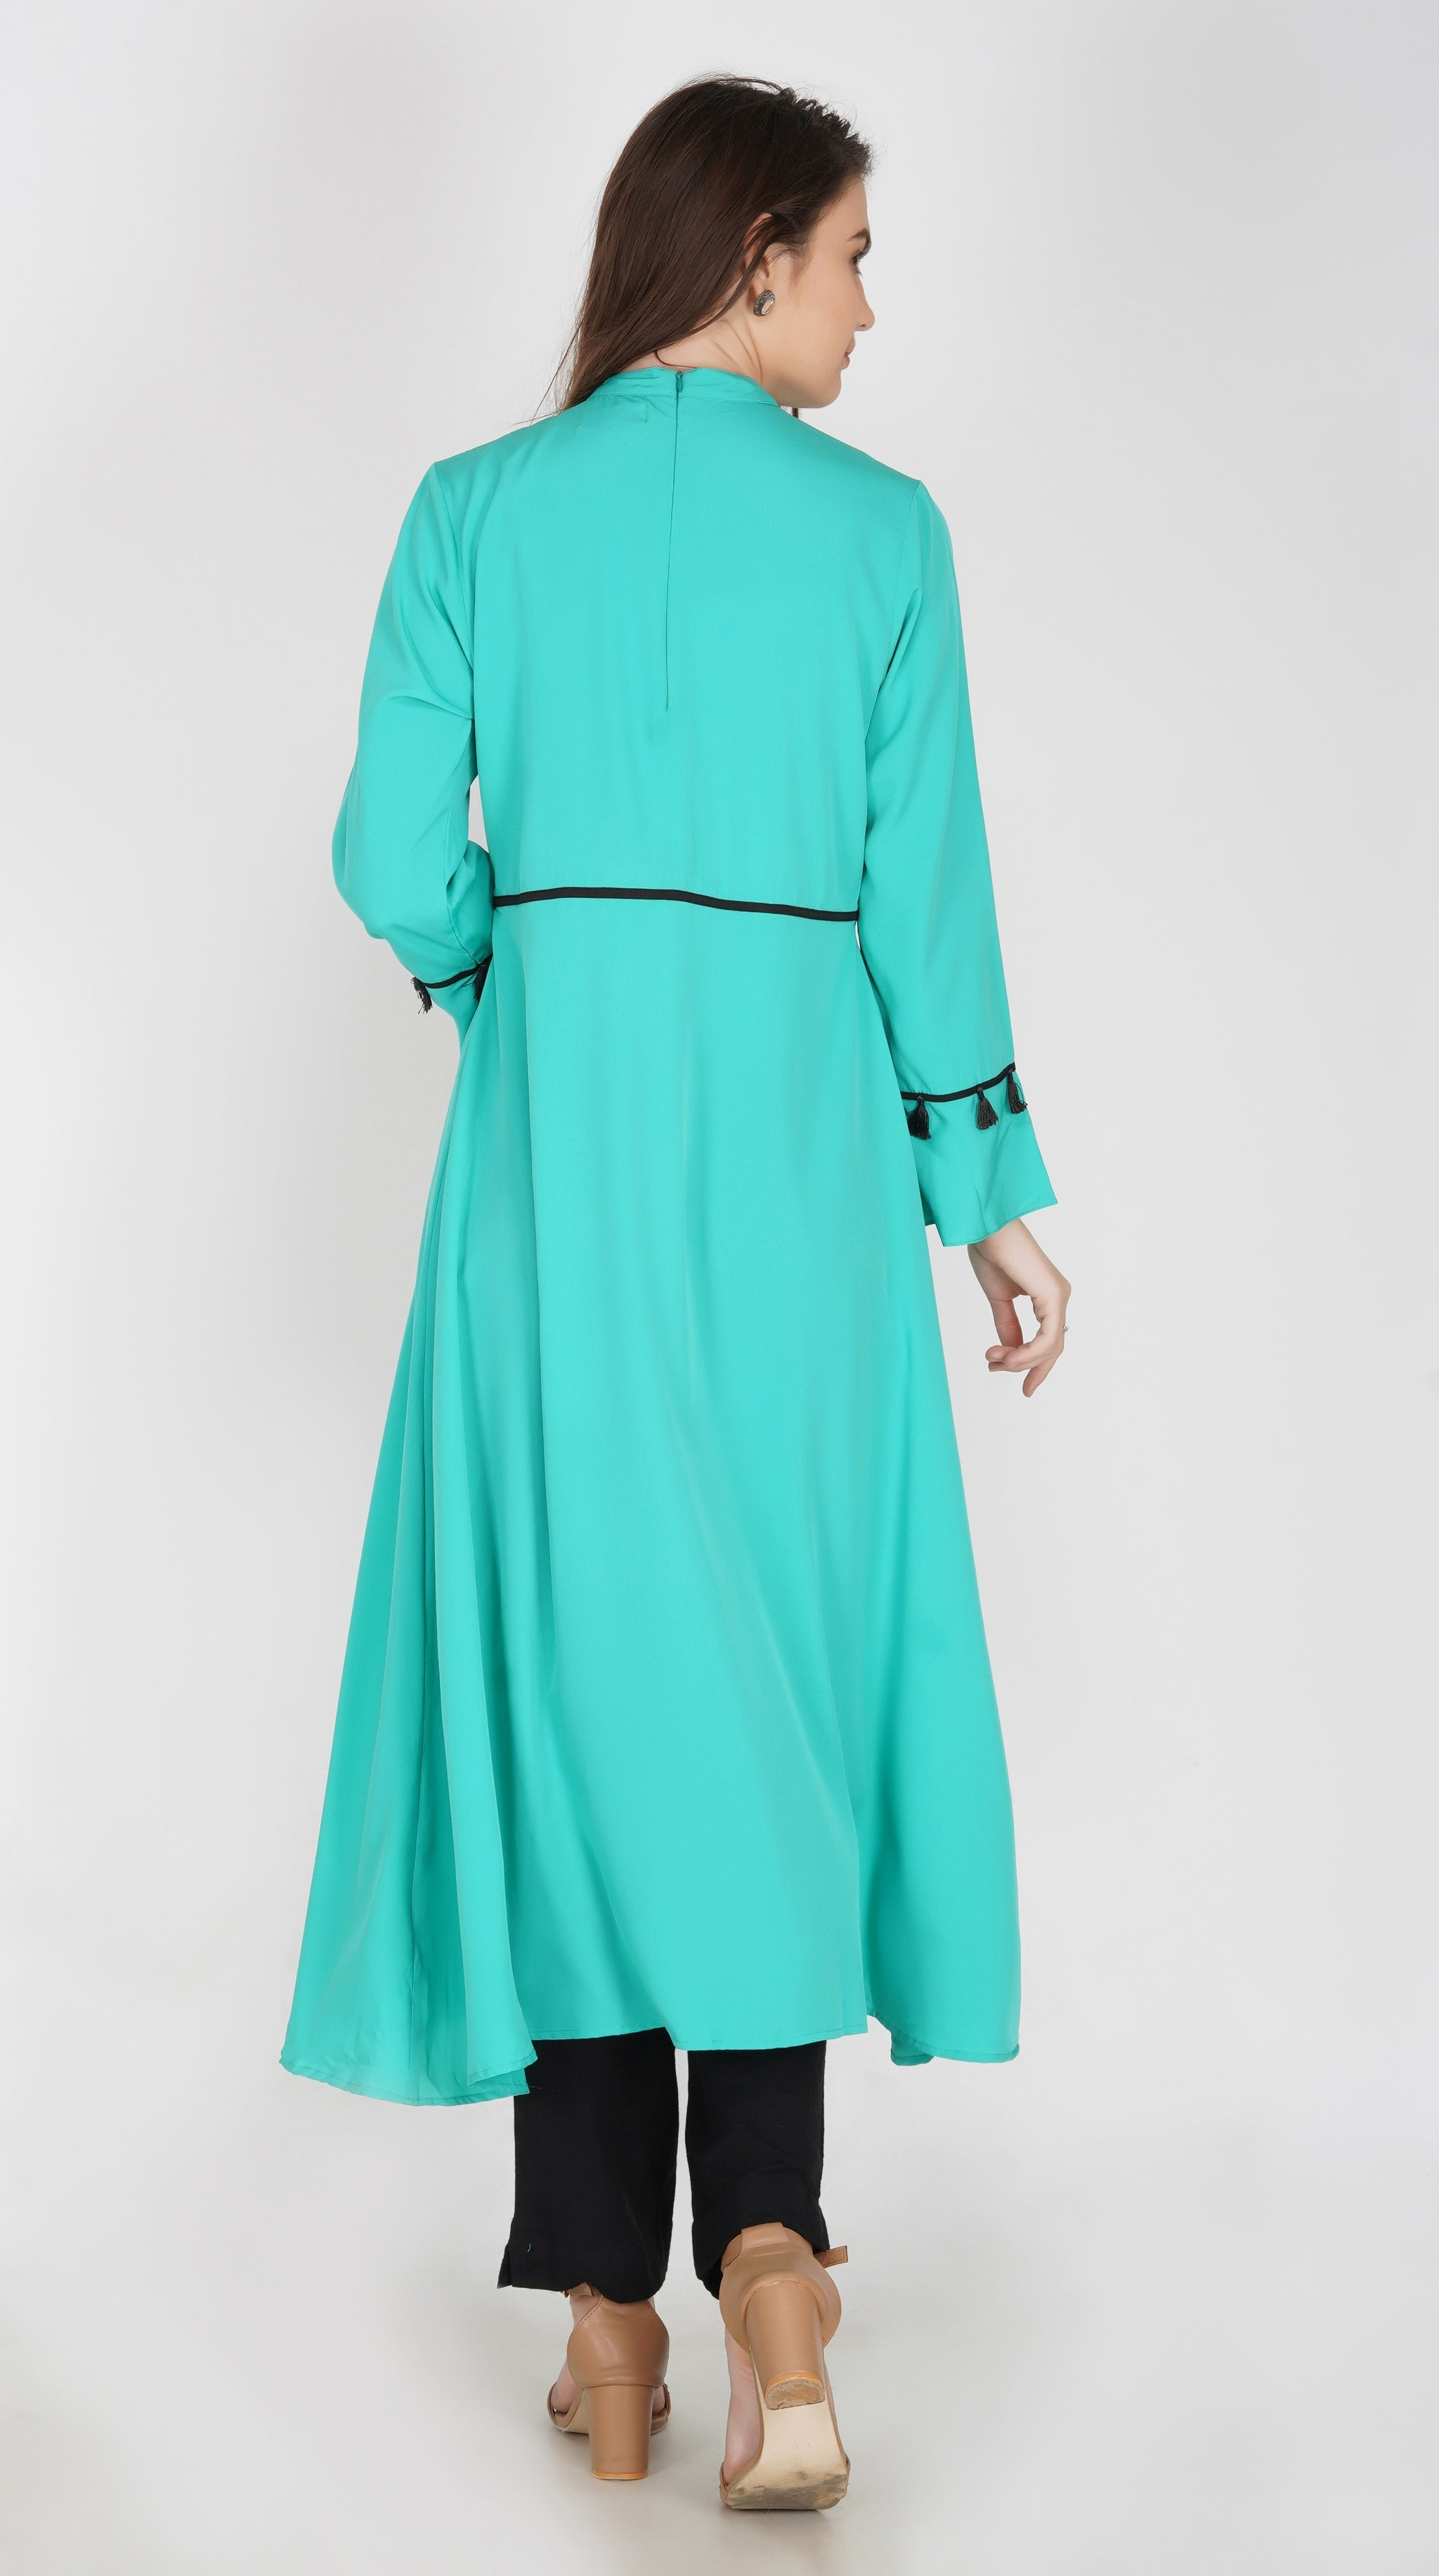 Ruqsar Pinned Emerald Dress and Simply Gris Stole Combo